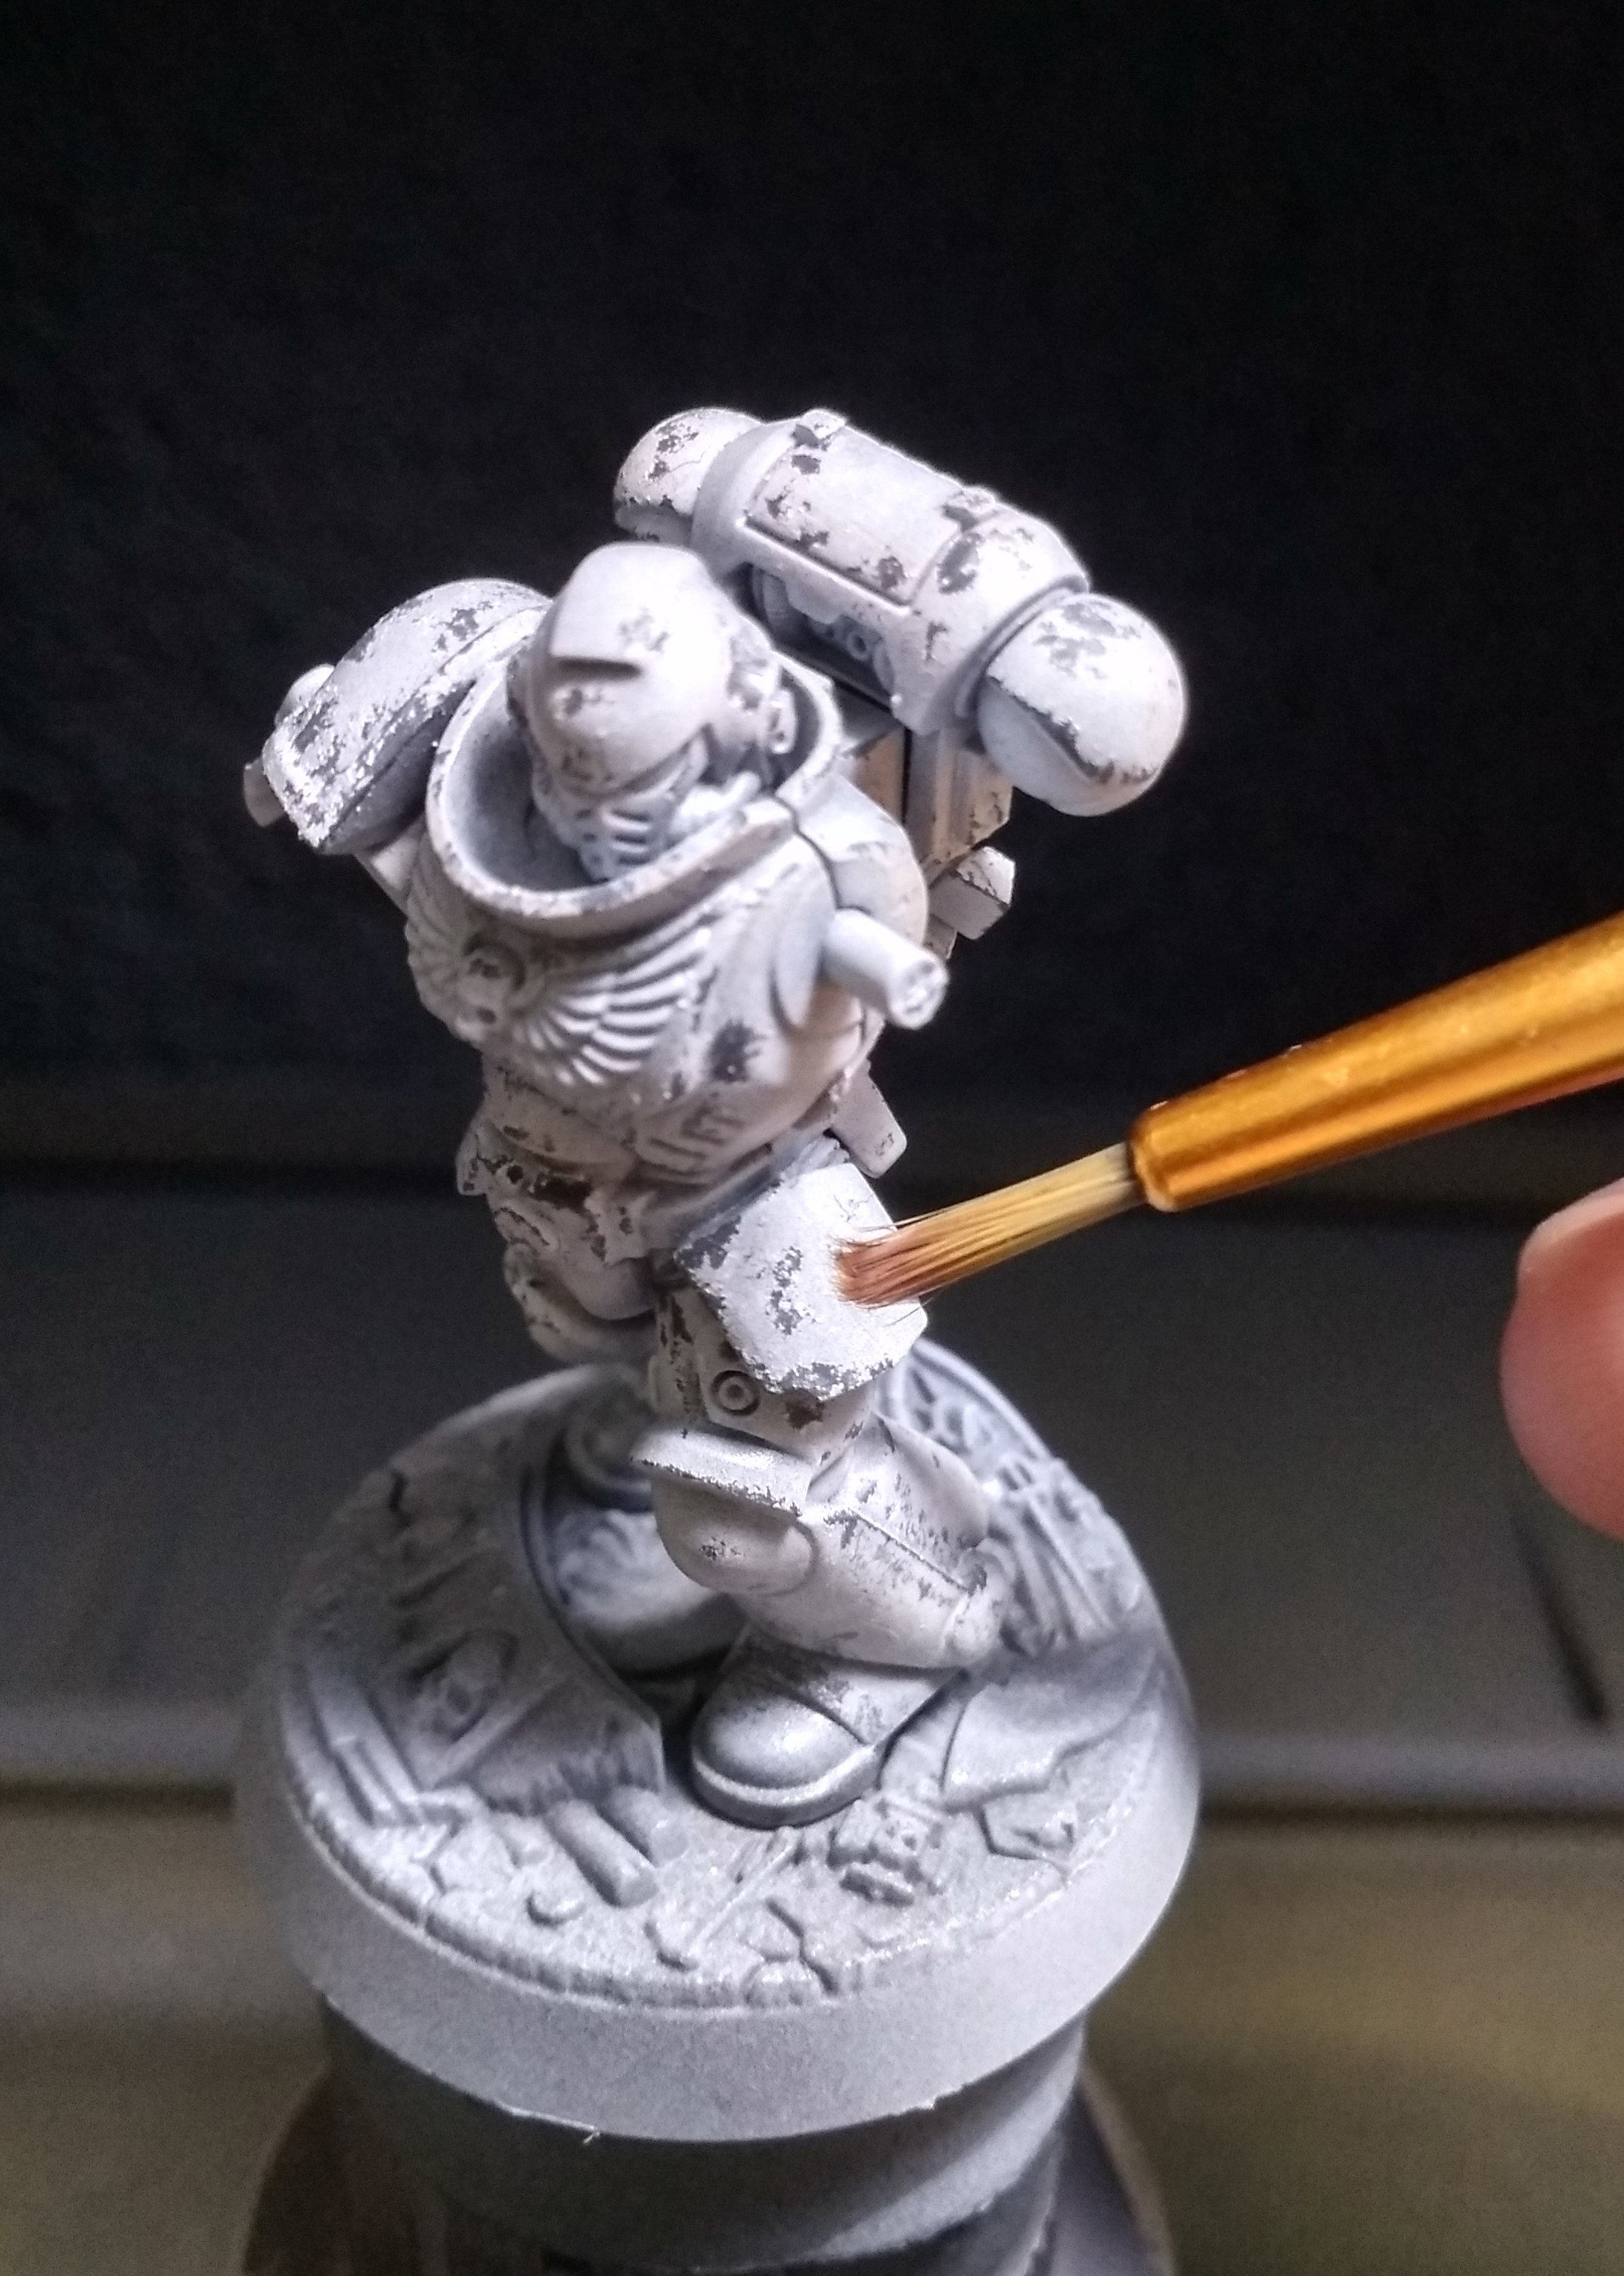 - On larger surfaces, you can add some chipping to represent battle damage. Using the tip of the wet brush stipple on the Dead White surface and dab a bit of the layer away.